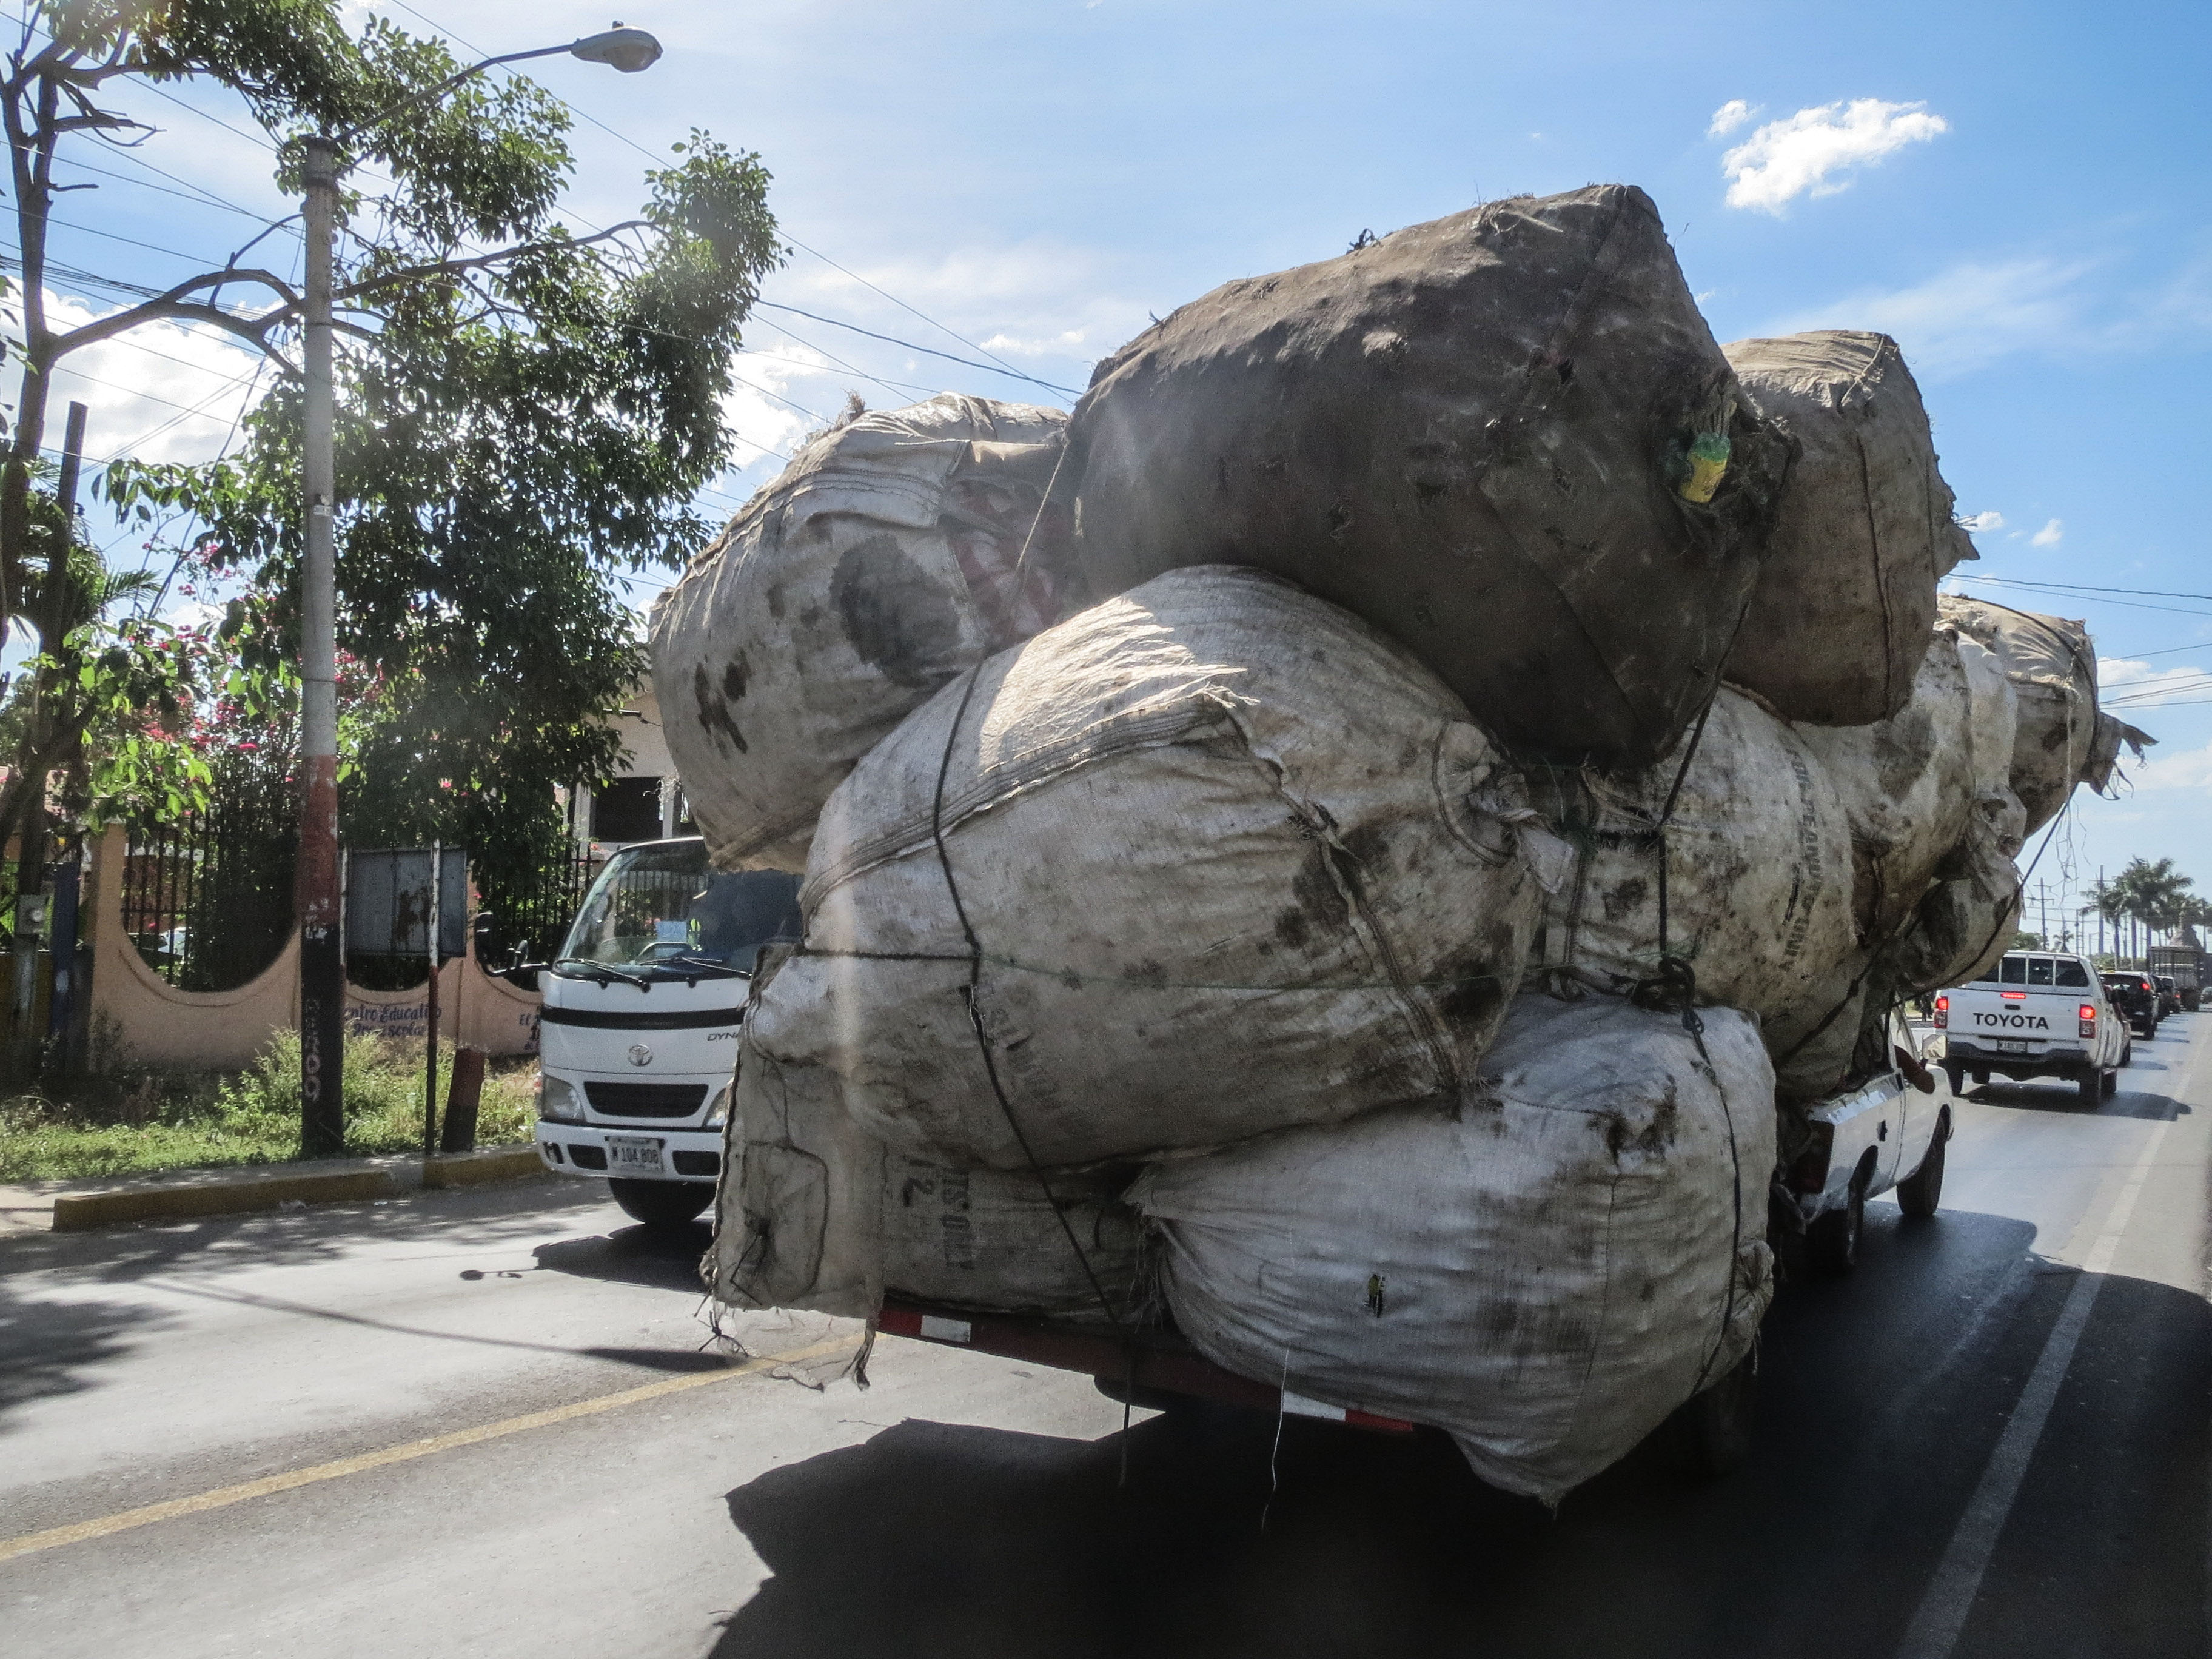 Overloaded truck 2